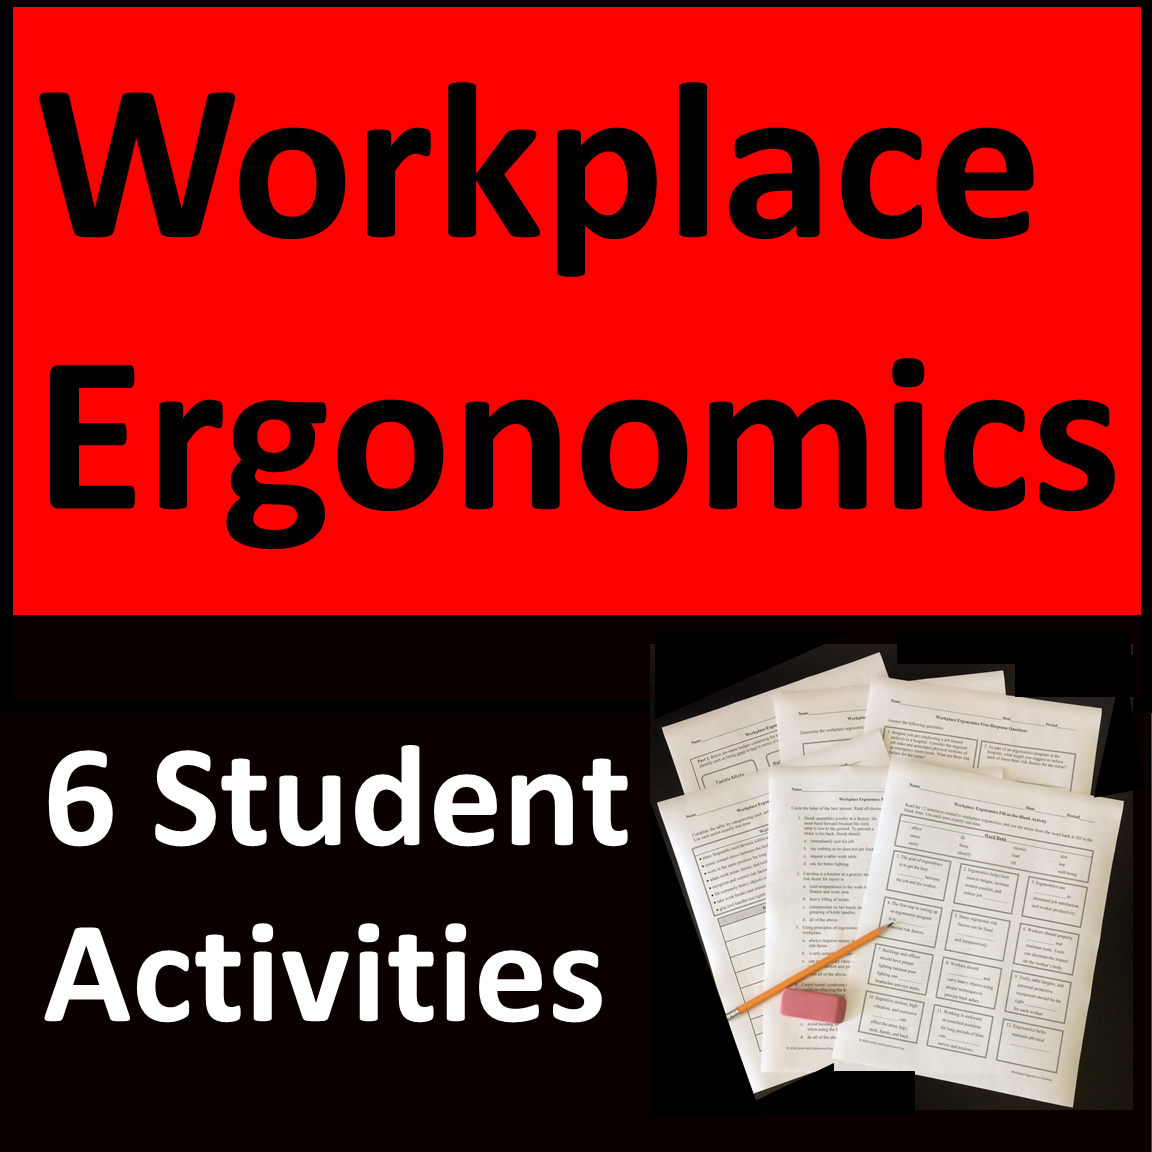 Workplace Ergonomics Activities Distance Learning